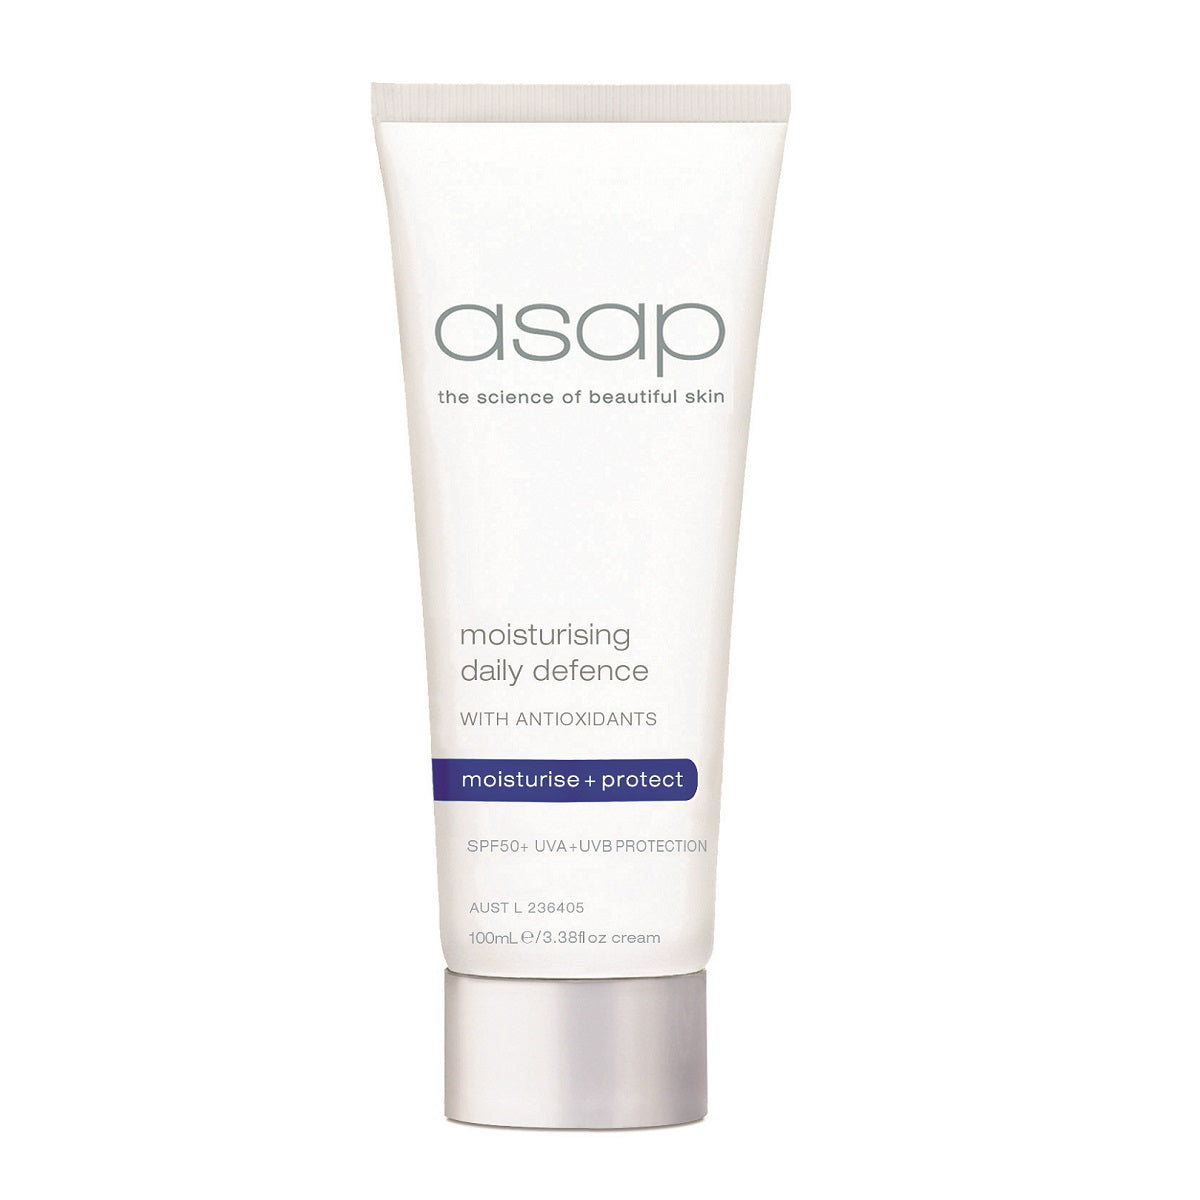 ASAP Moisturising Daily Defense SPF50+